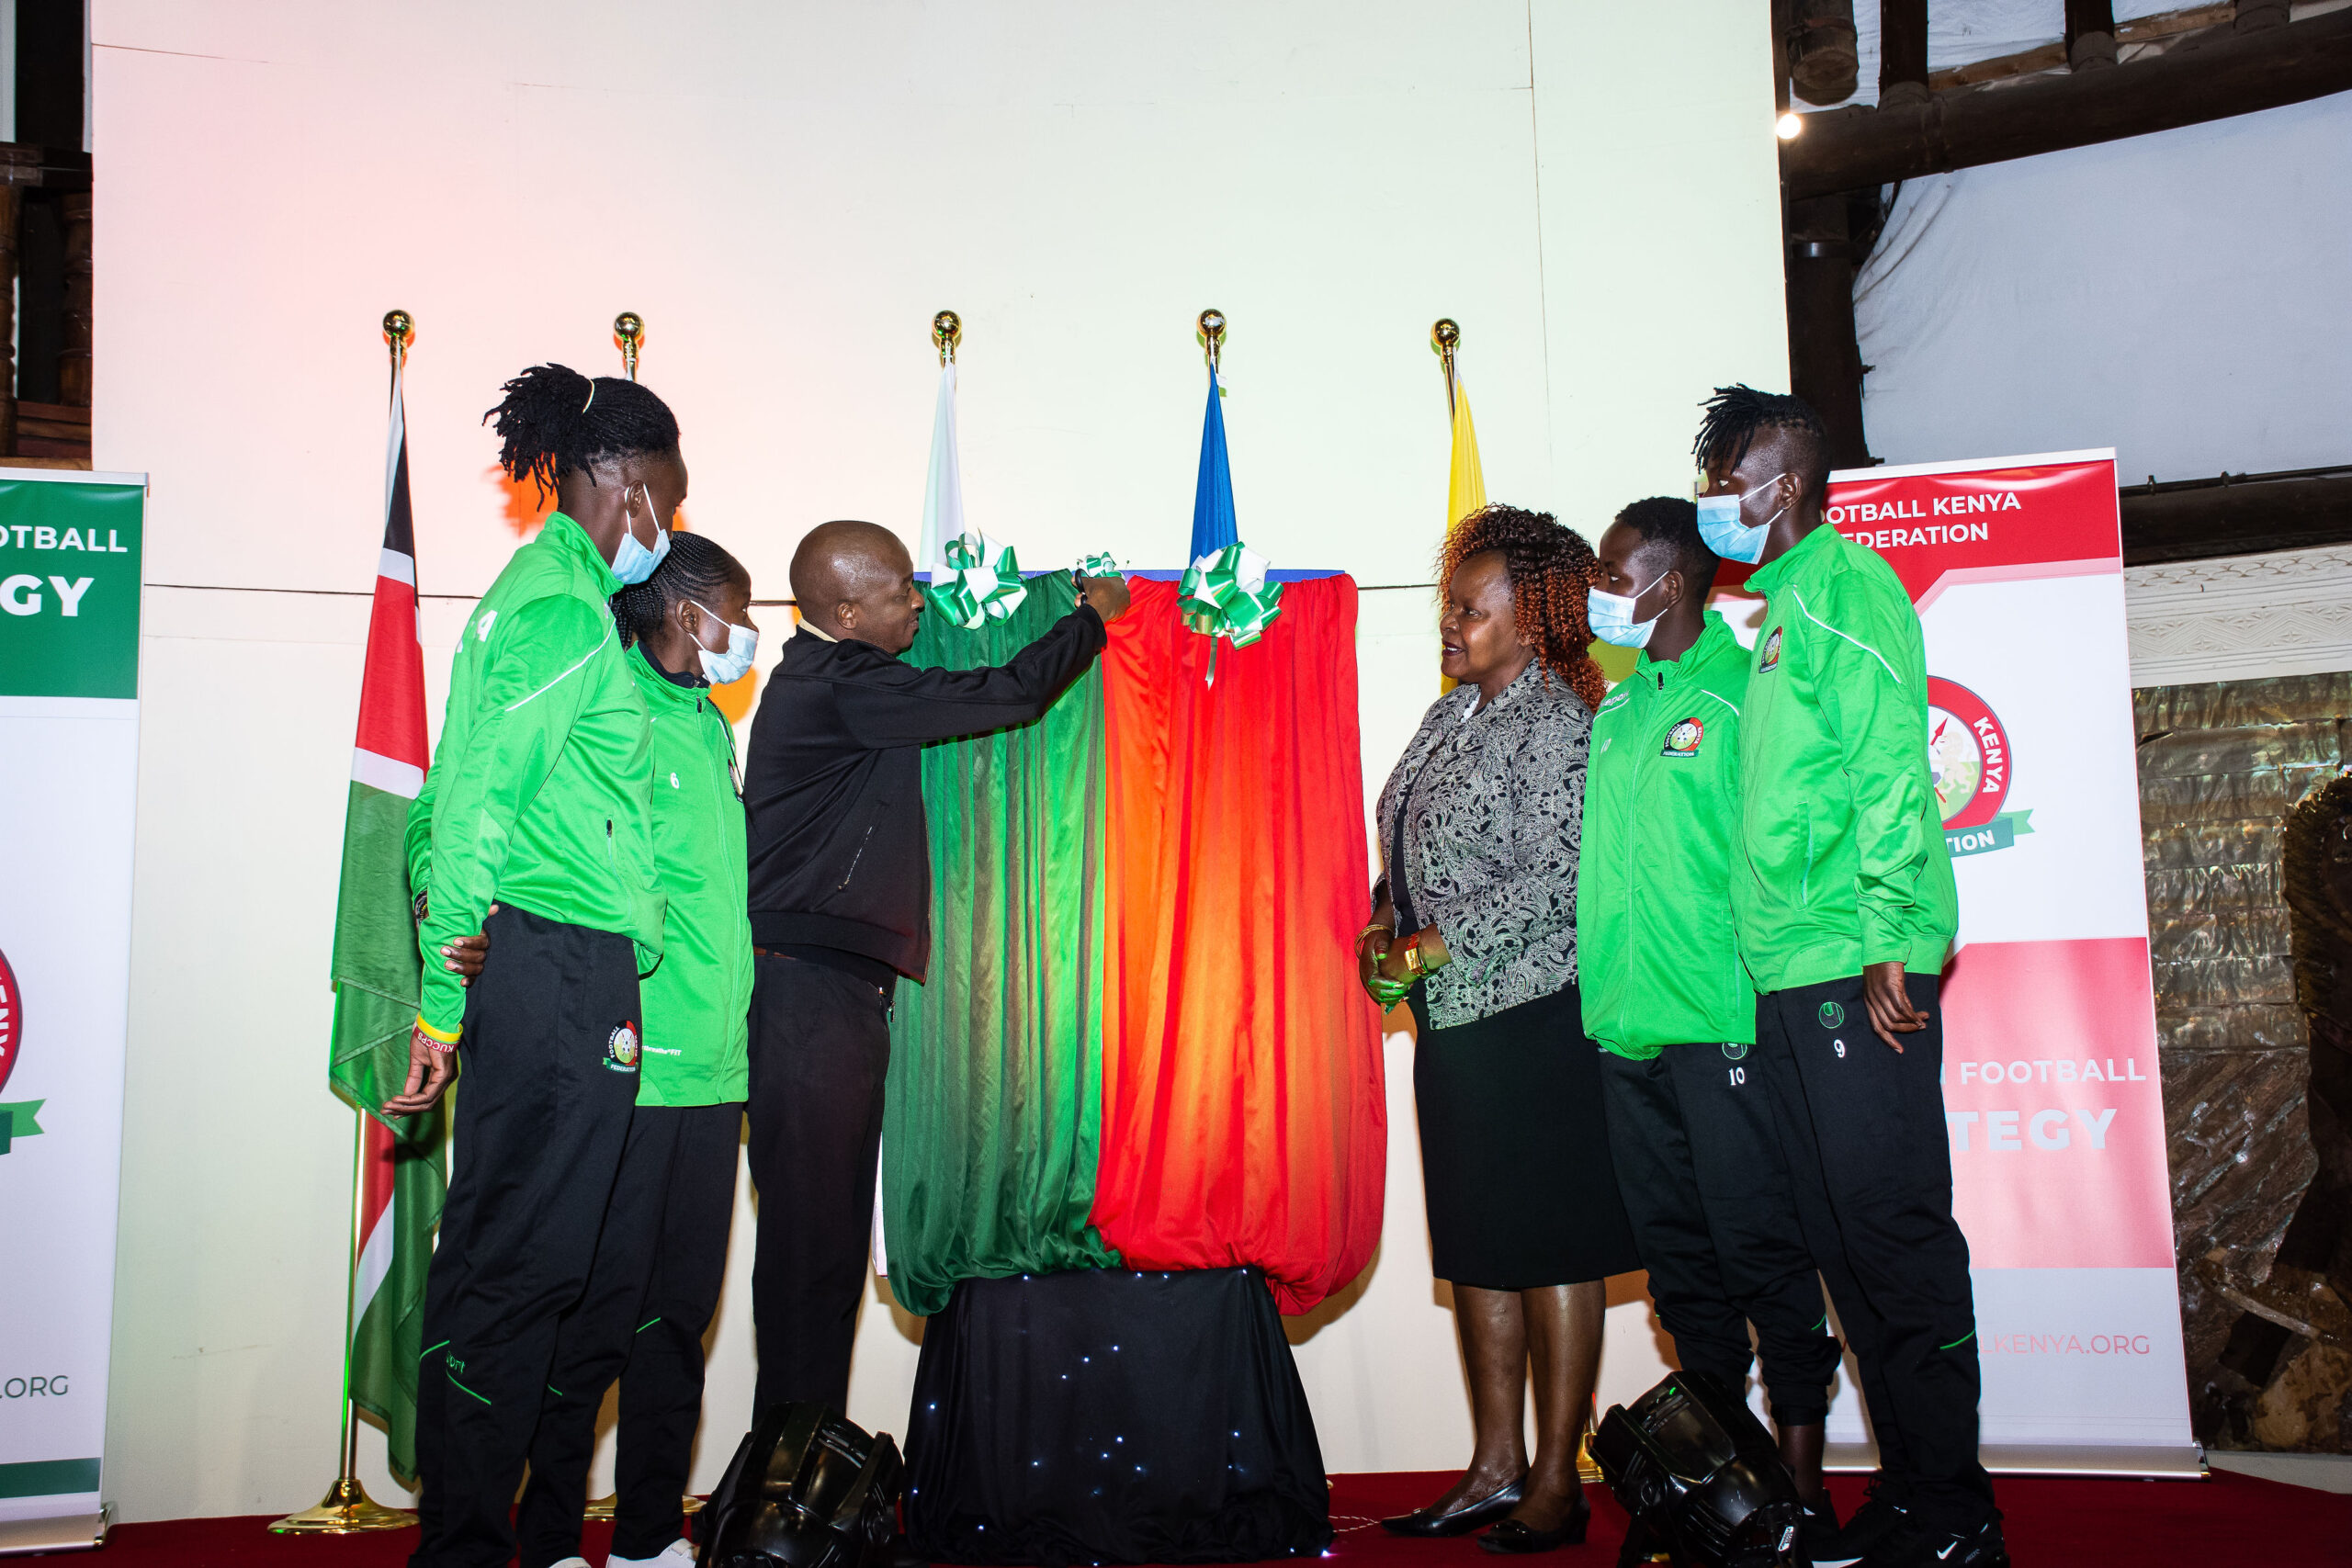 FKF'S AMBITIOUS STRATEGY TO DELIVER WOMEN'S FOOTBALL TO CANAAN